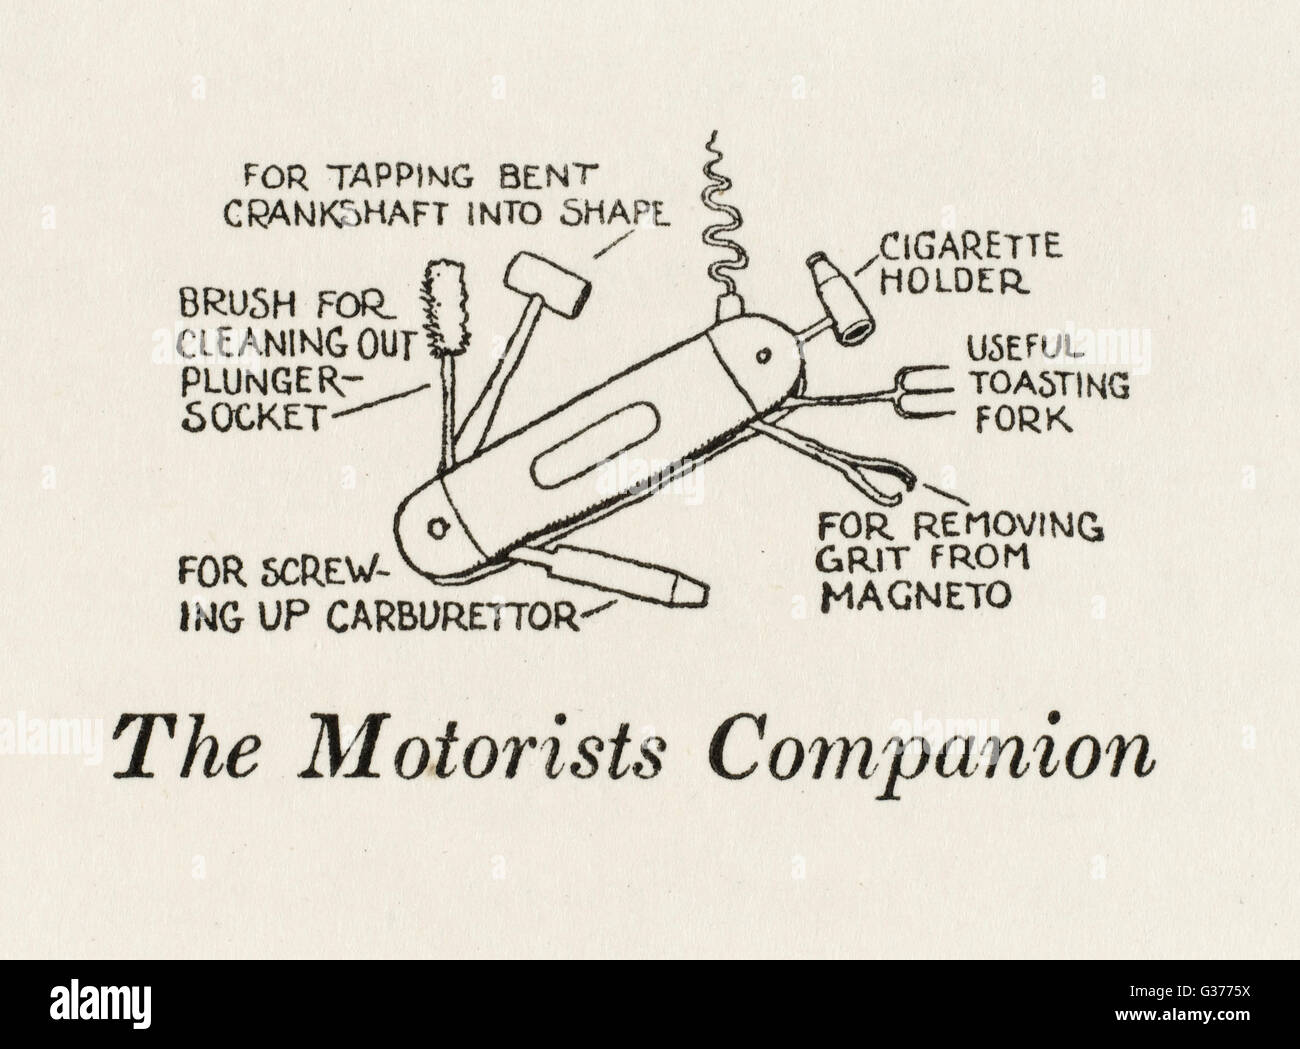 The Motorists companion: a Swiss army knife of usefulness, including small hammer for tapping a bent crankshaft - Stock Image